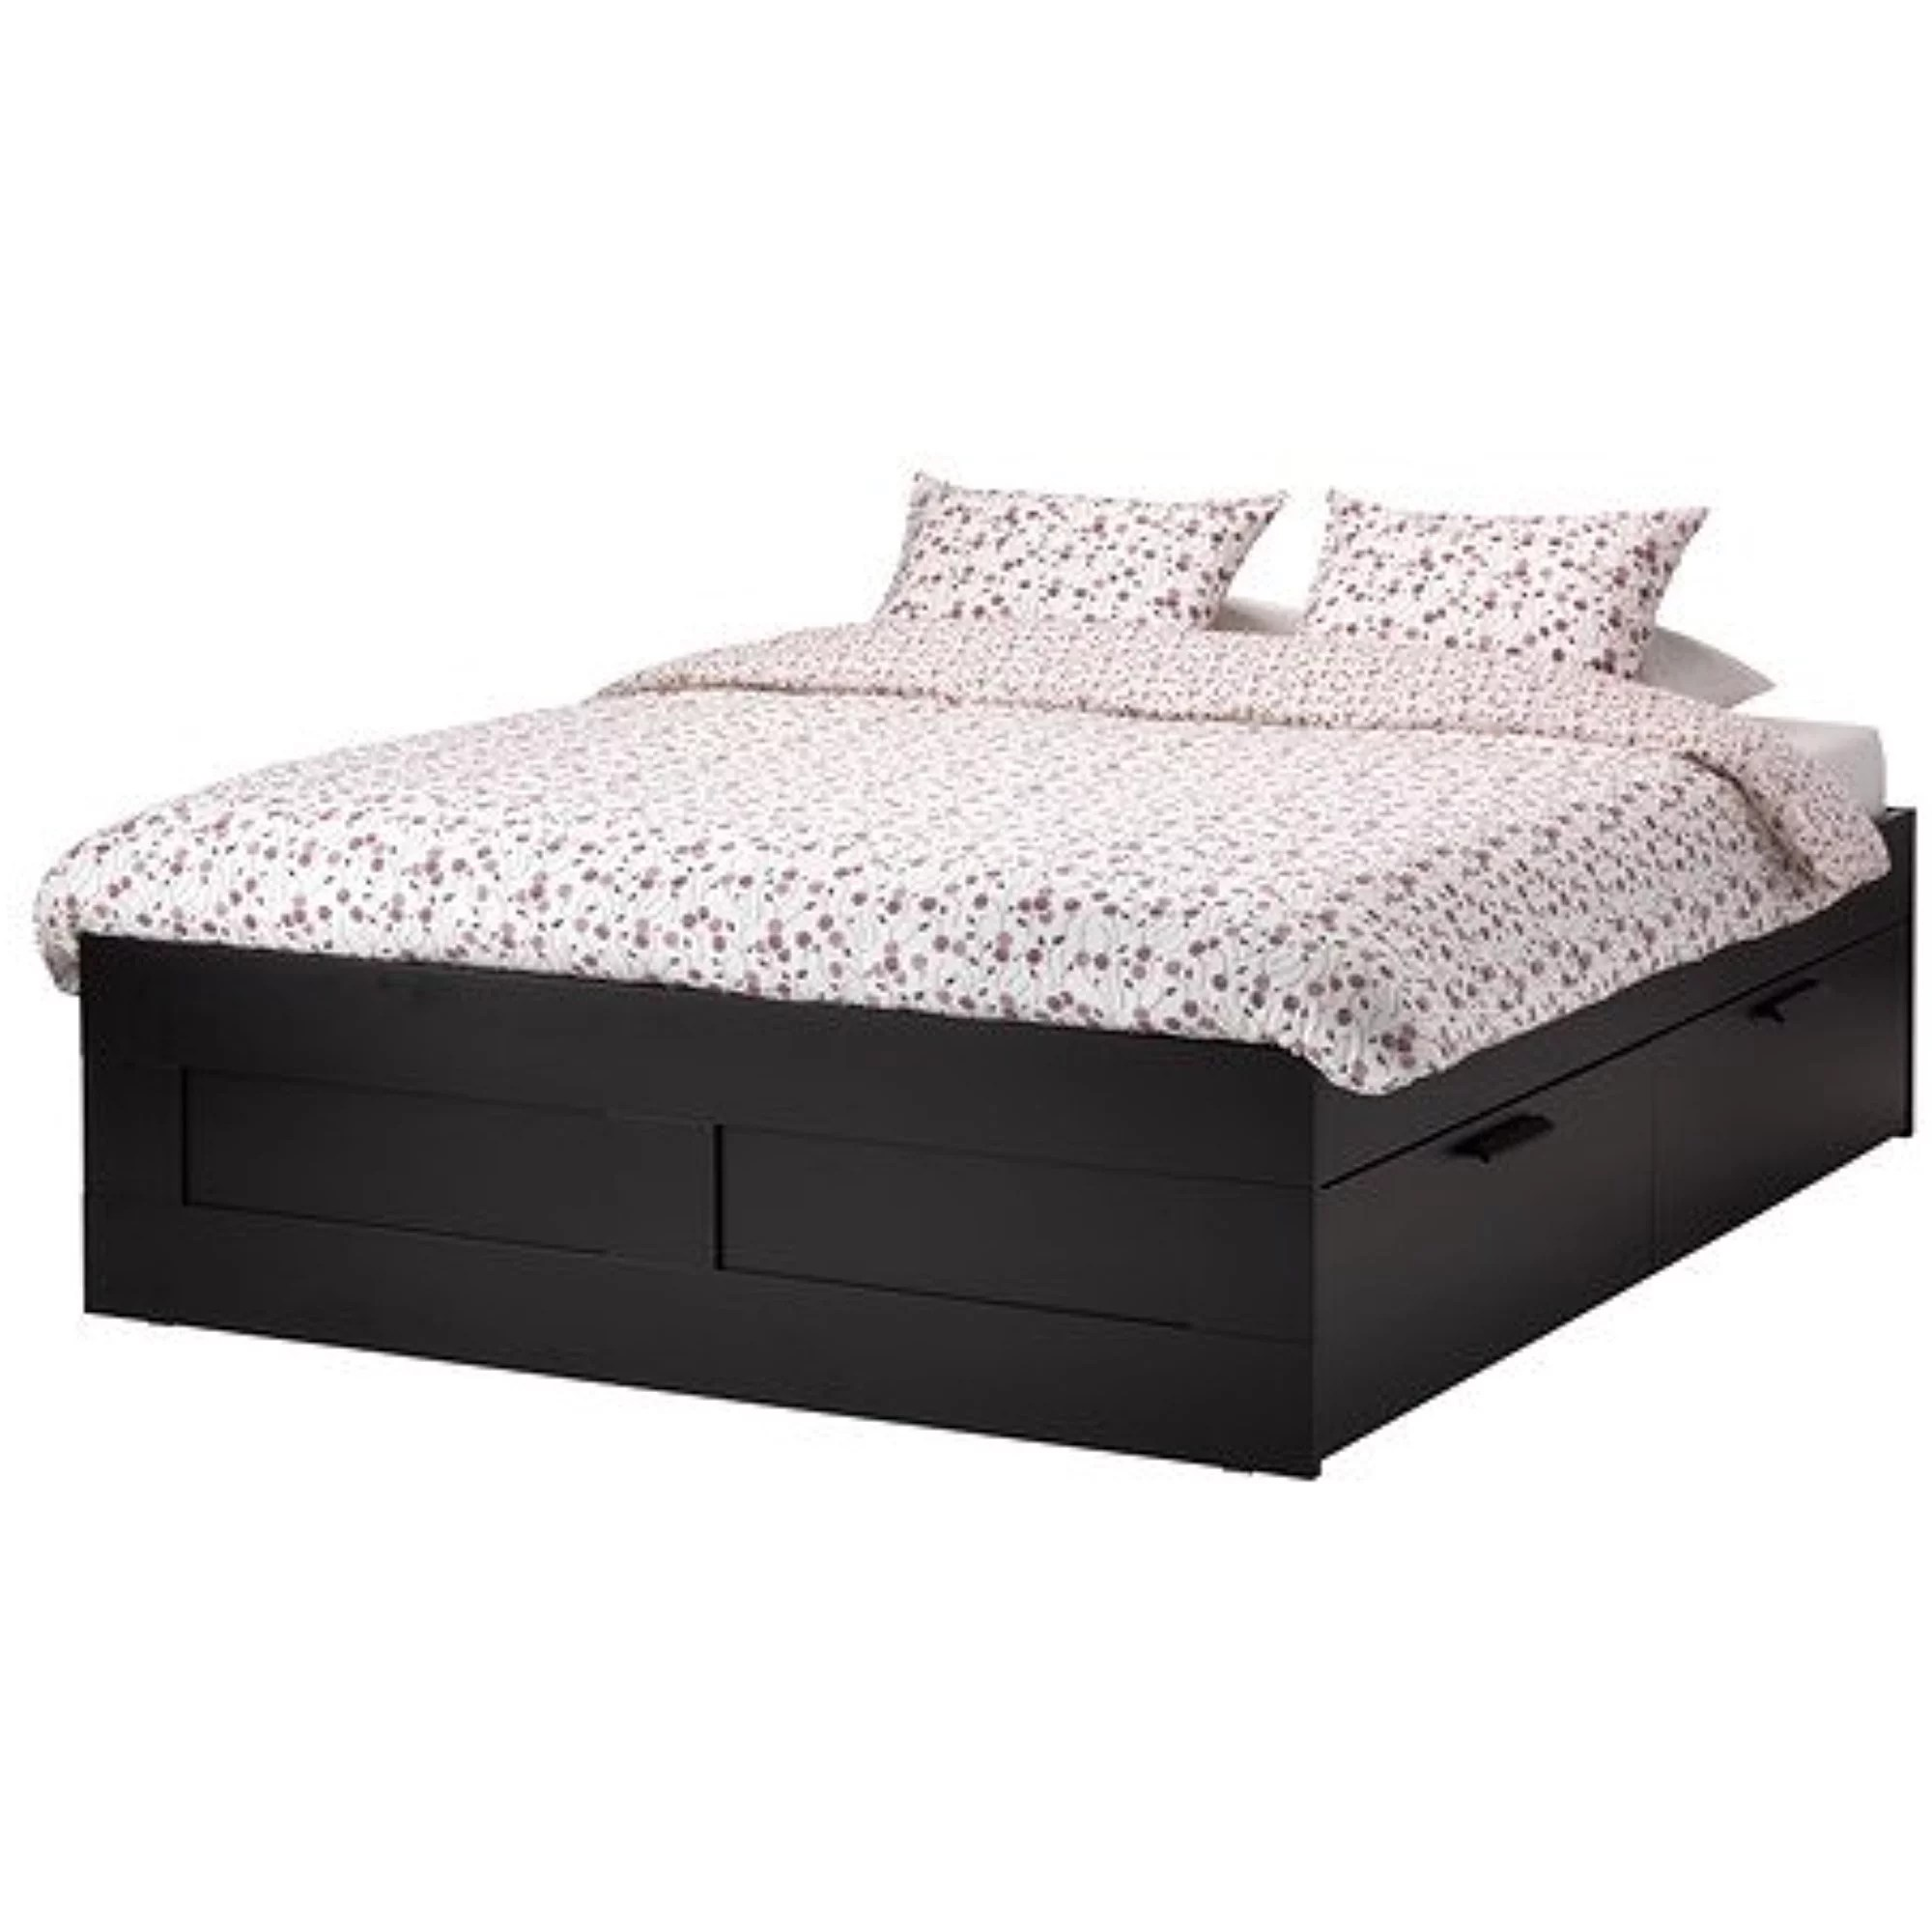 Ikea Boxspring 220 Cm Ikea King Size Bed Frame With Storage Black 38382 22026 220